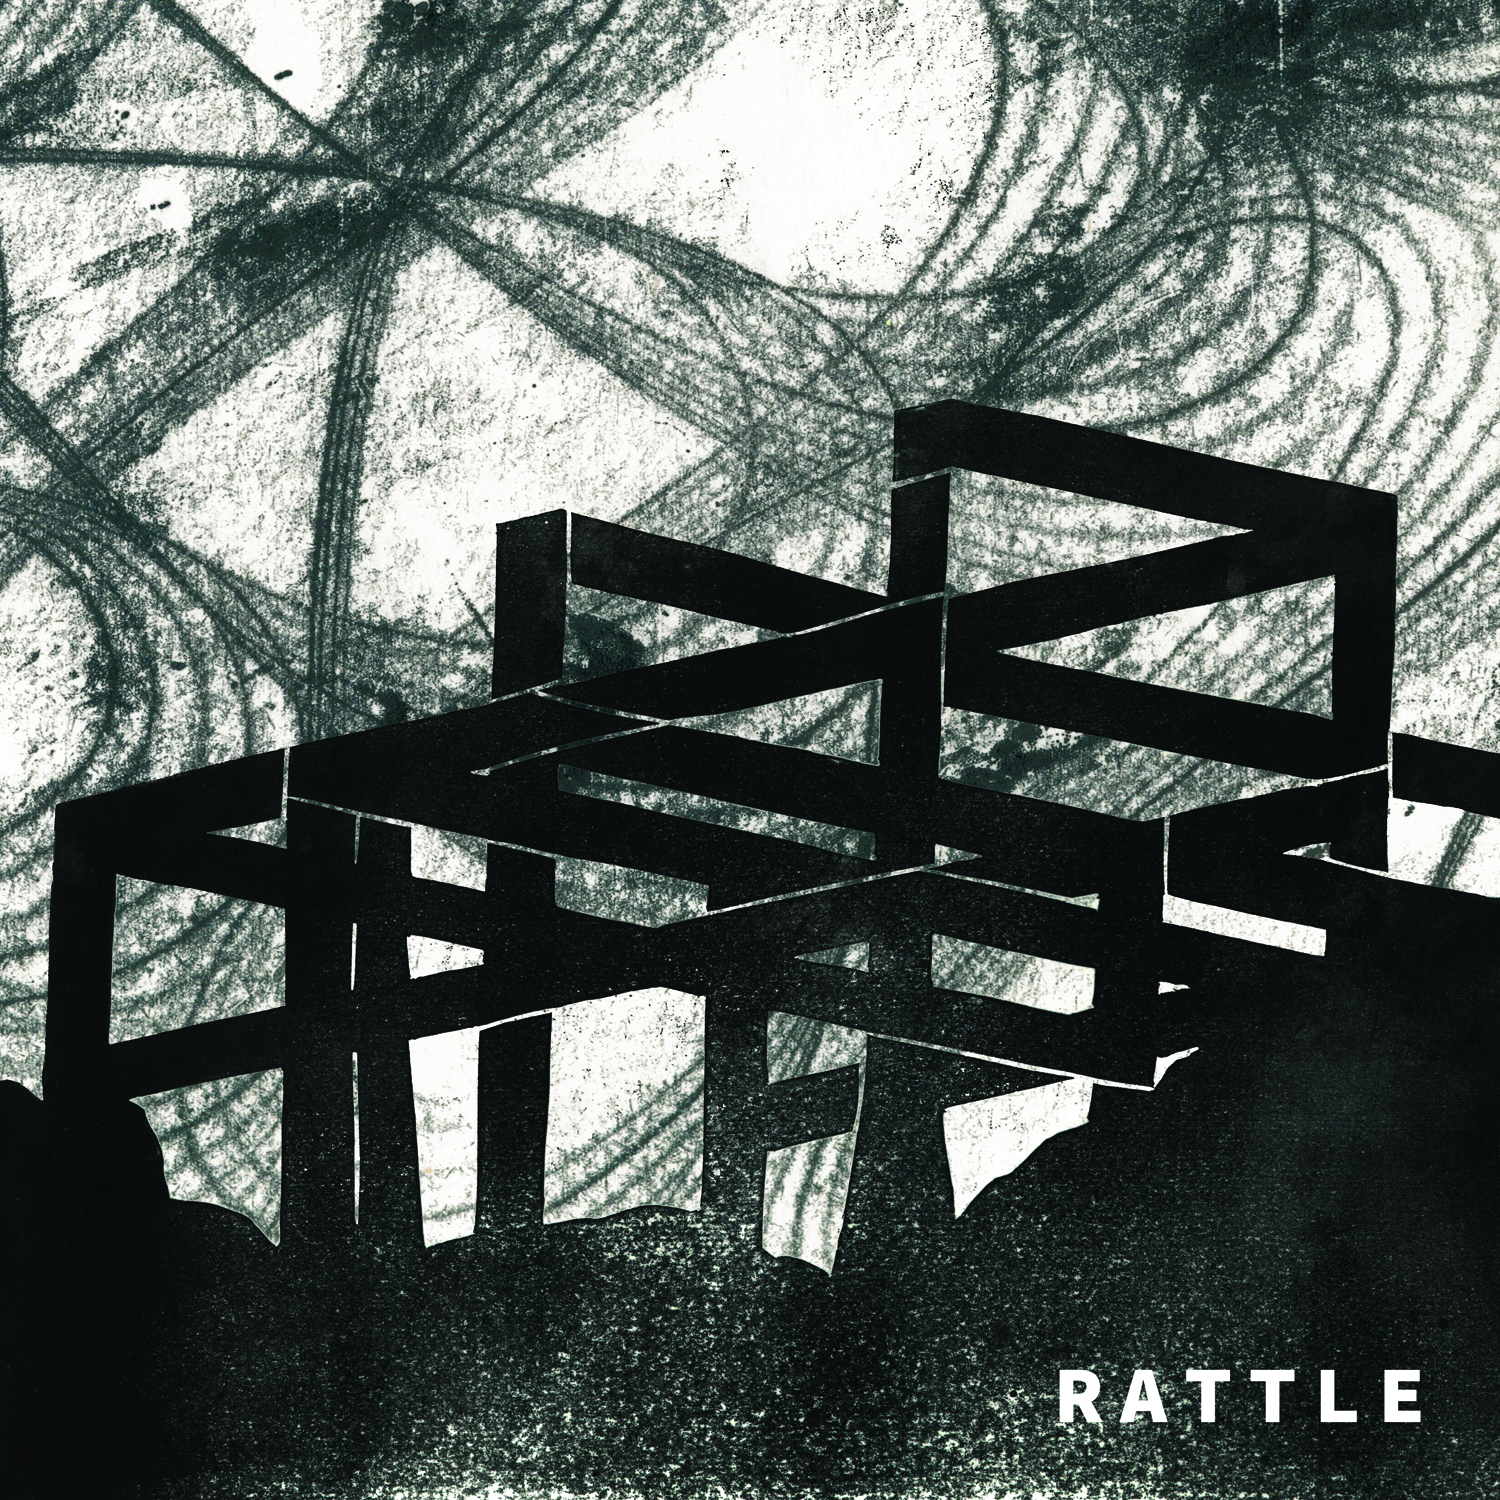 https://i1.wp.com/www.upsettherhythm.co.uk/rattle/rattle-rattle-UTR082-300dpi.jpg